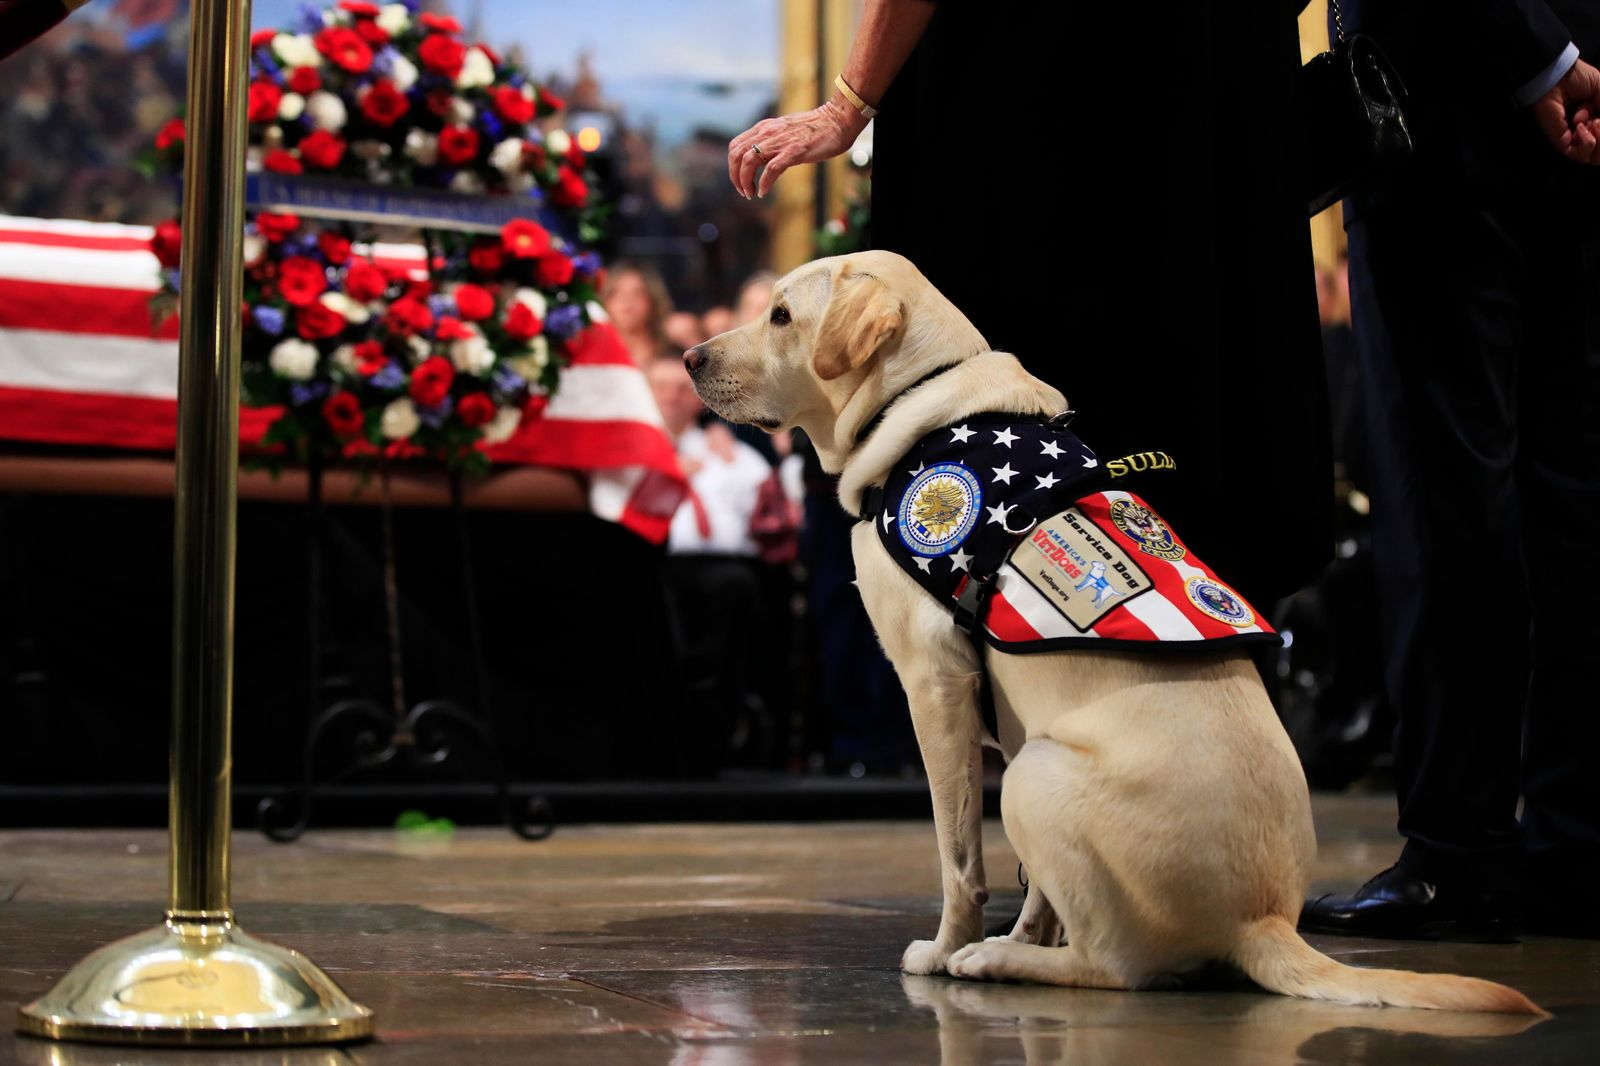 Sully, former President George H.W. Bush's service dog, pays his respect to President Bush as he lie in state at the U.S. Capitol in Washington, Tuesday, Dec. 4. (AP Photo/Manuel Balce Ceneta)